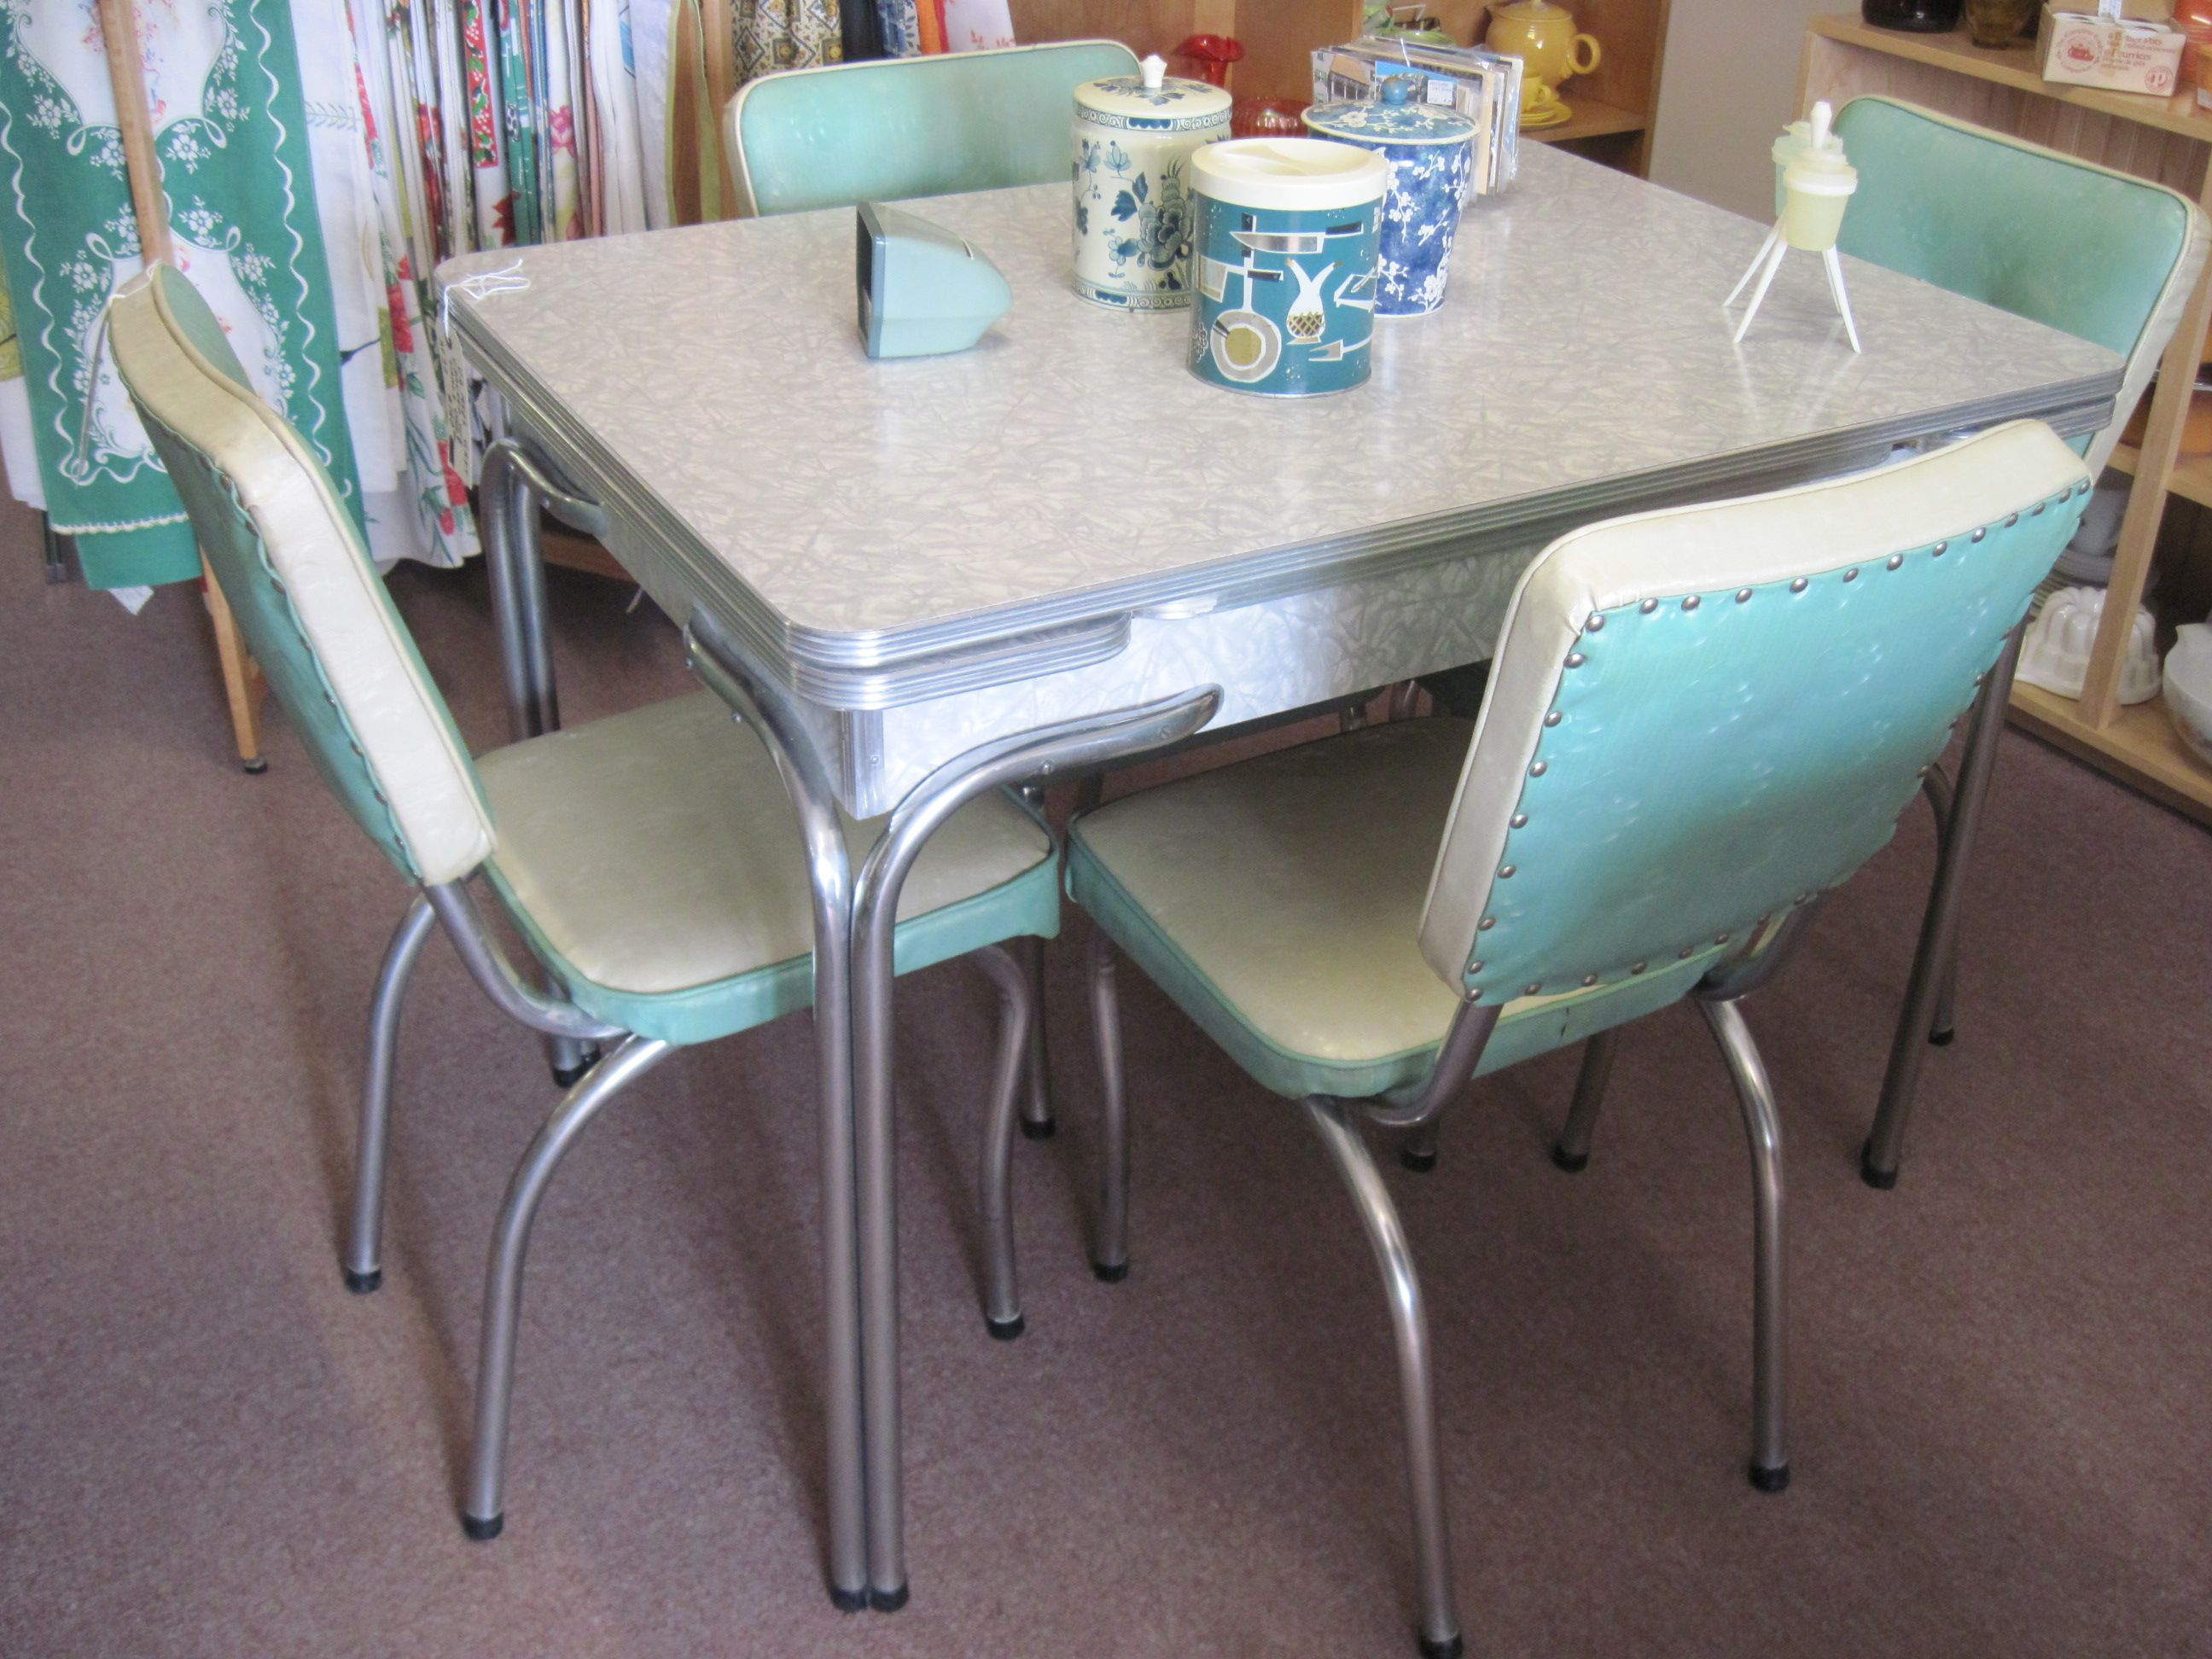 Vintage Formica Kitchen Table For Sale